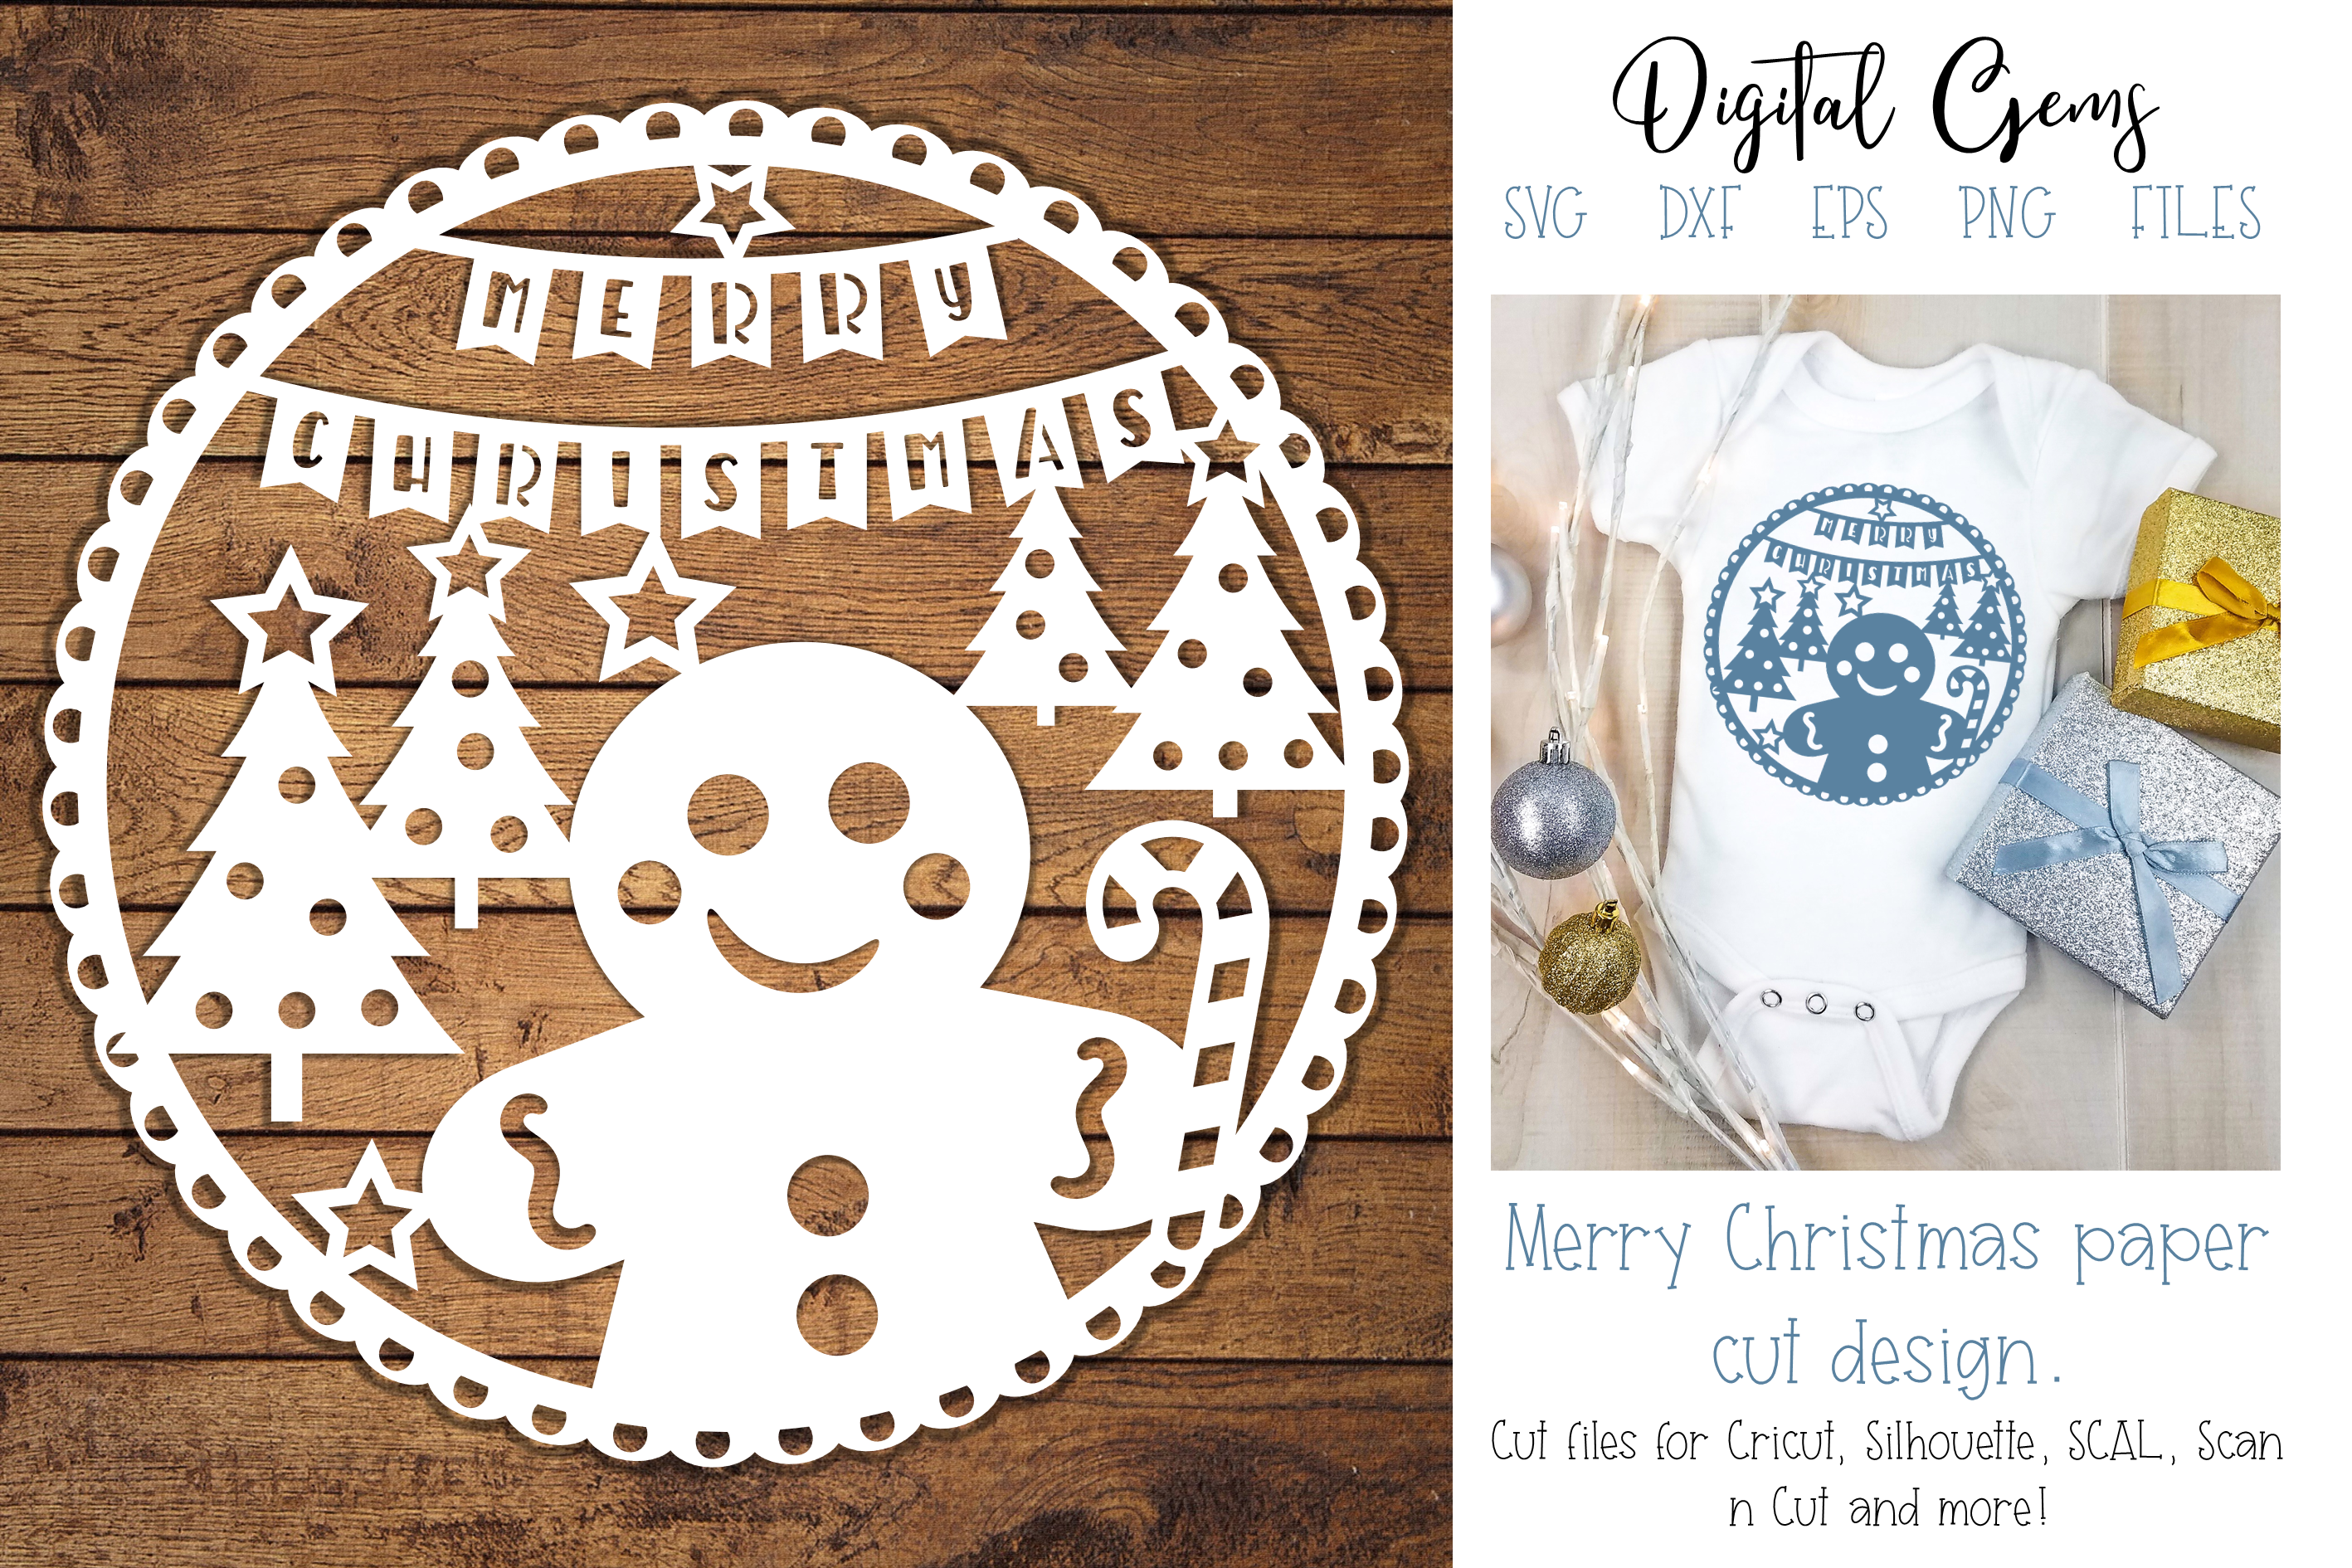 Christmas Gingerbread paper cut design SVG / DXF / EPS files example image 1